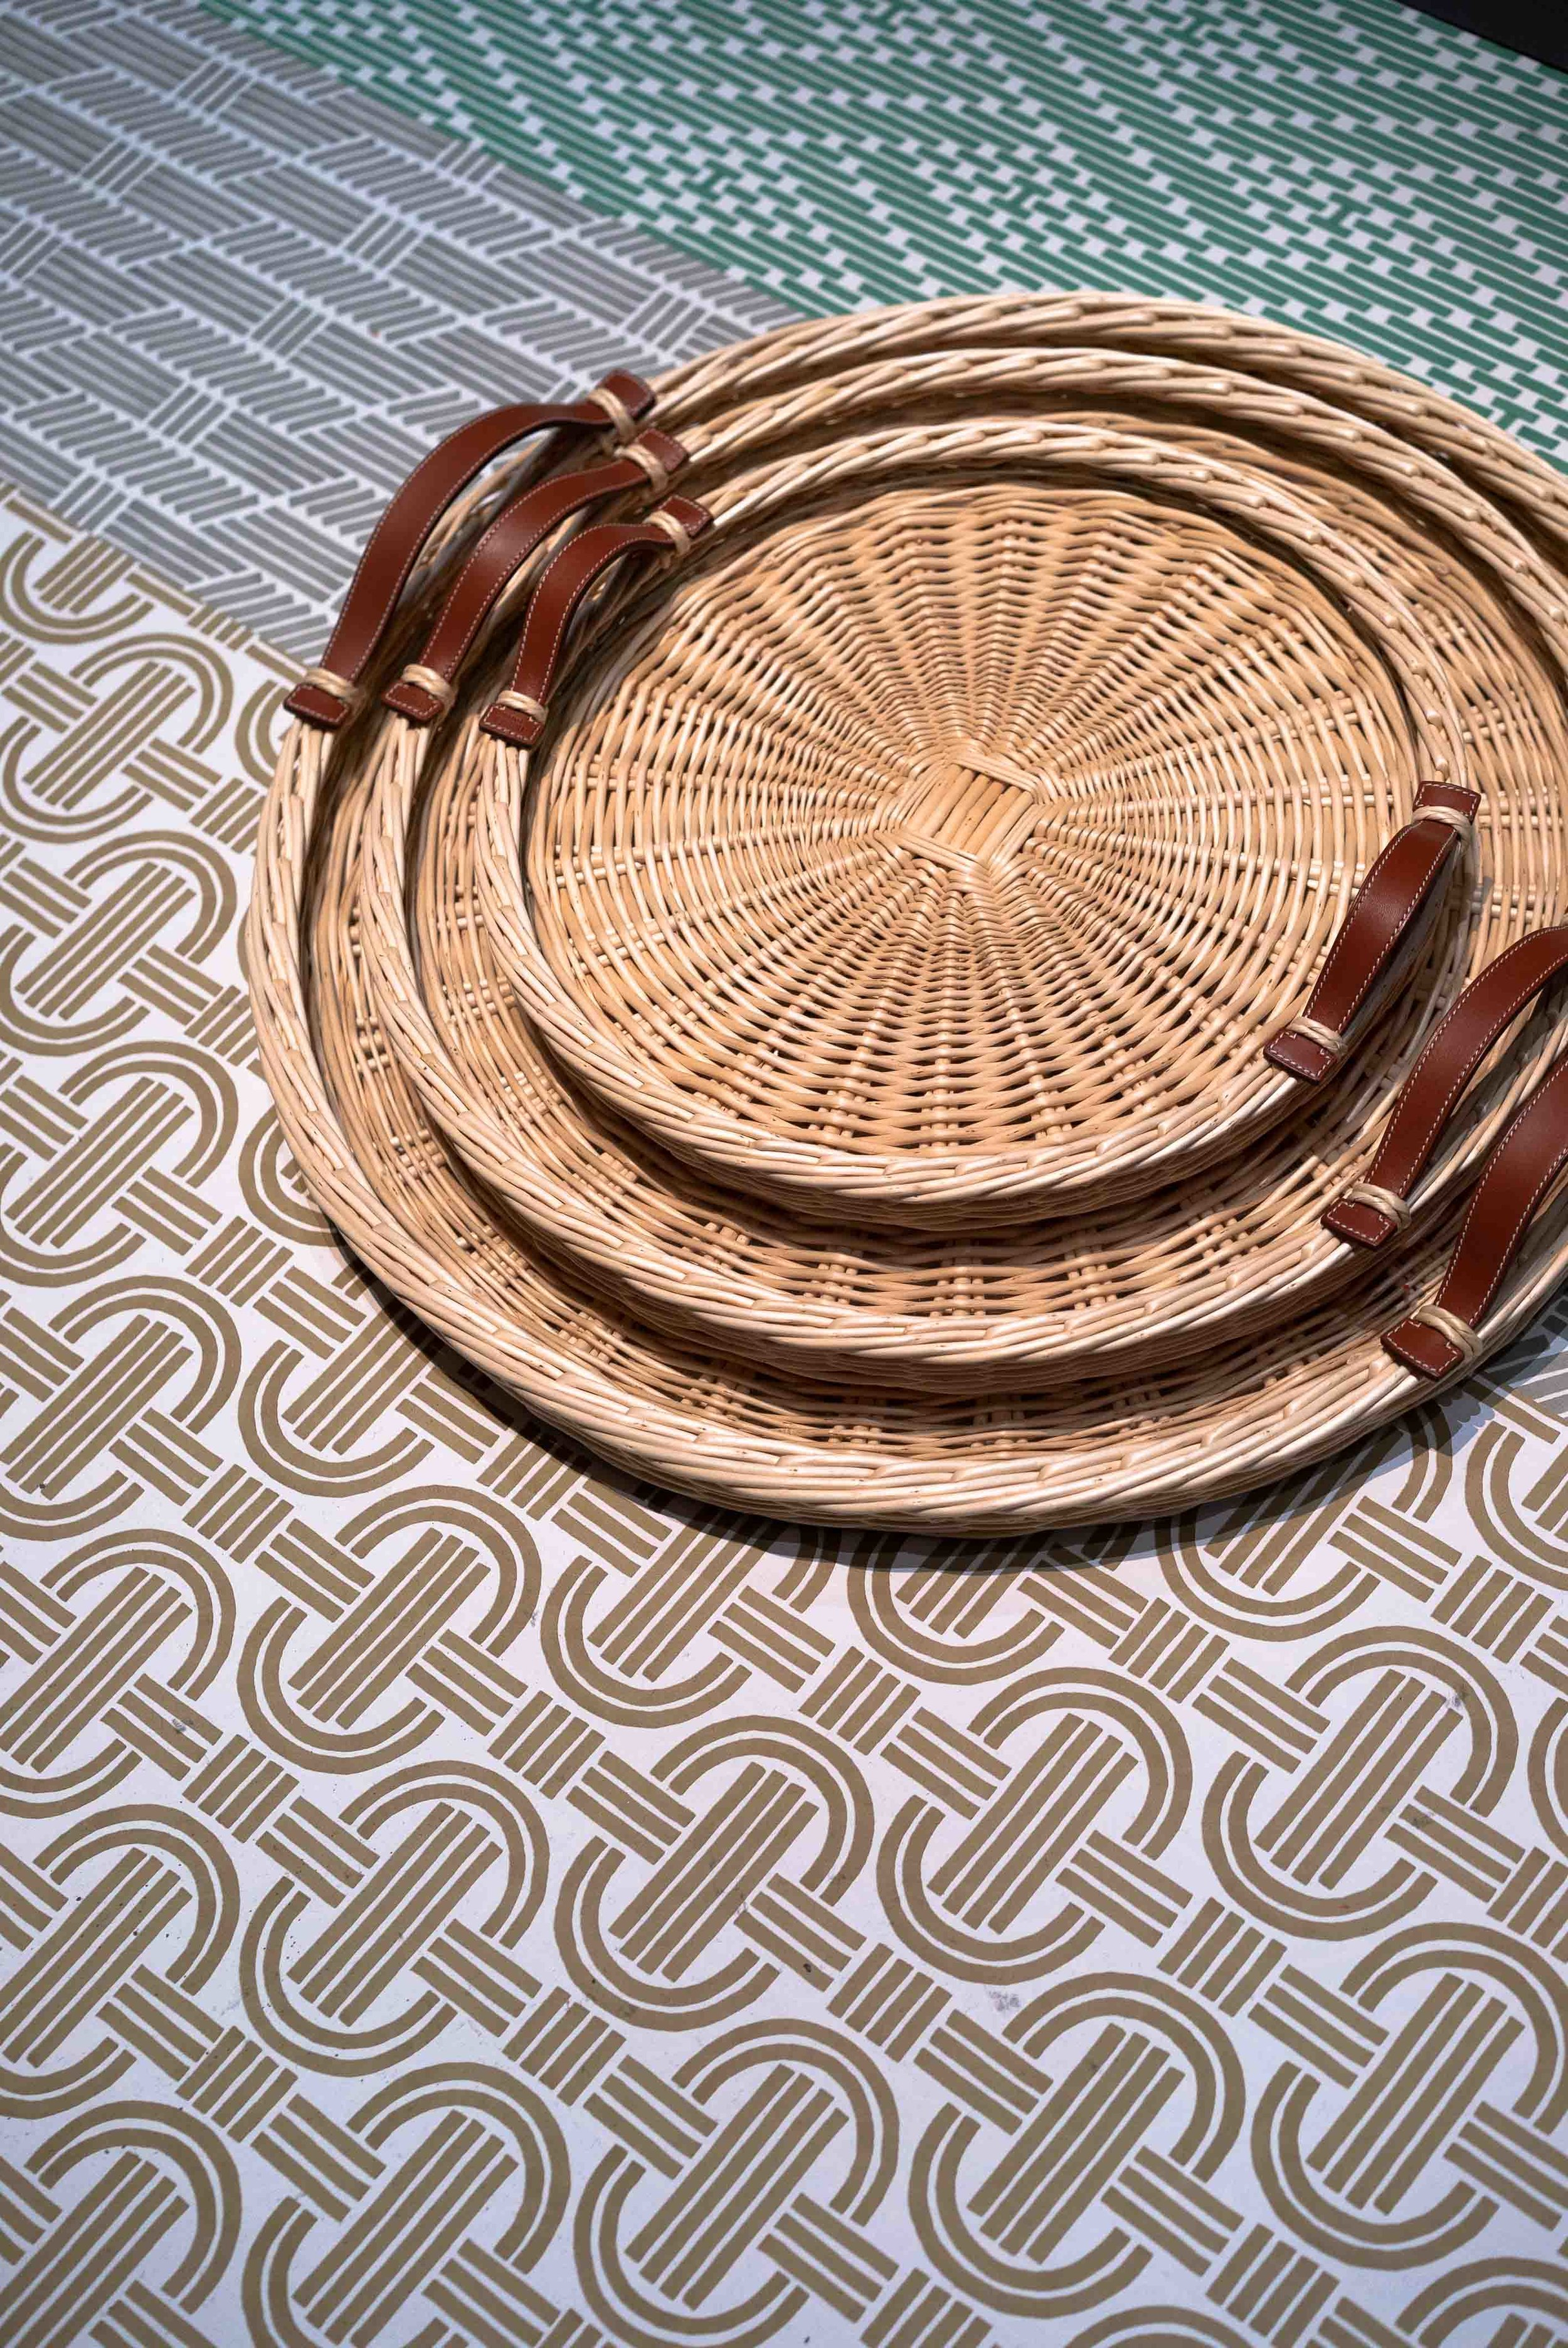 Park and Oseraie - A tray that combines the vernacular skill of basketry with simple lines enhanced with natural leather handles.